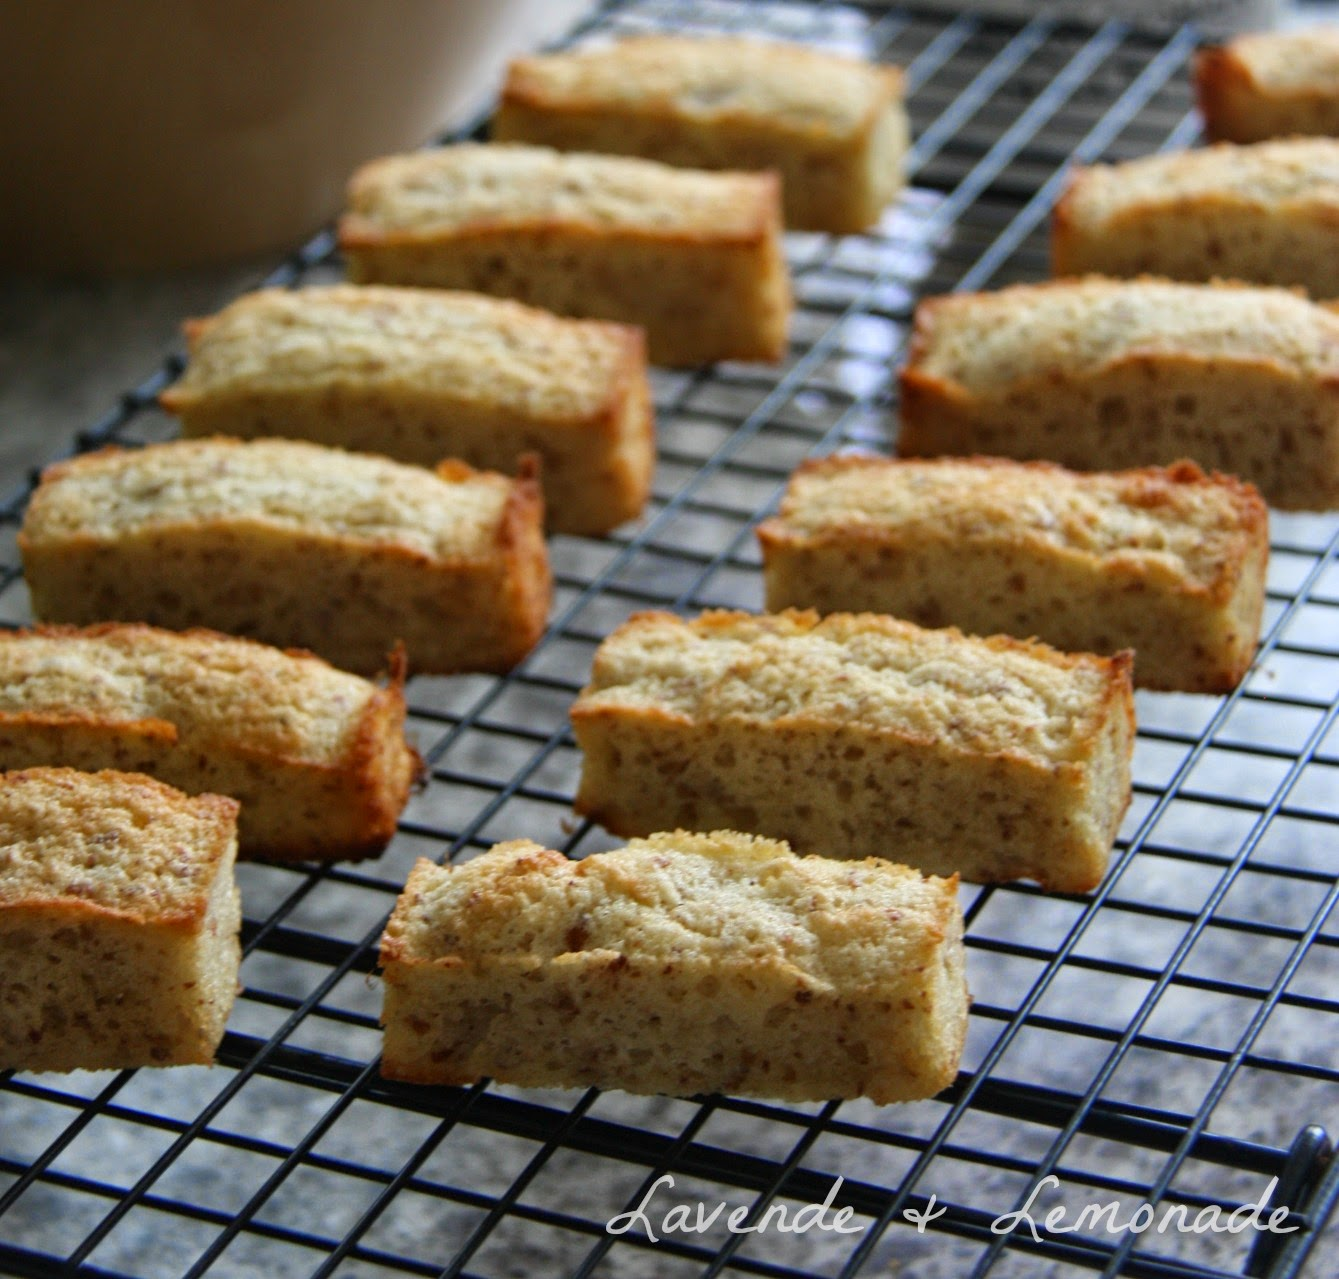 Amazingly Delicious! French Financier Almond Cakes by Lavende & Lemonade